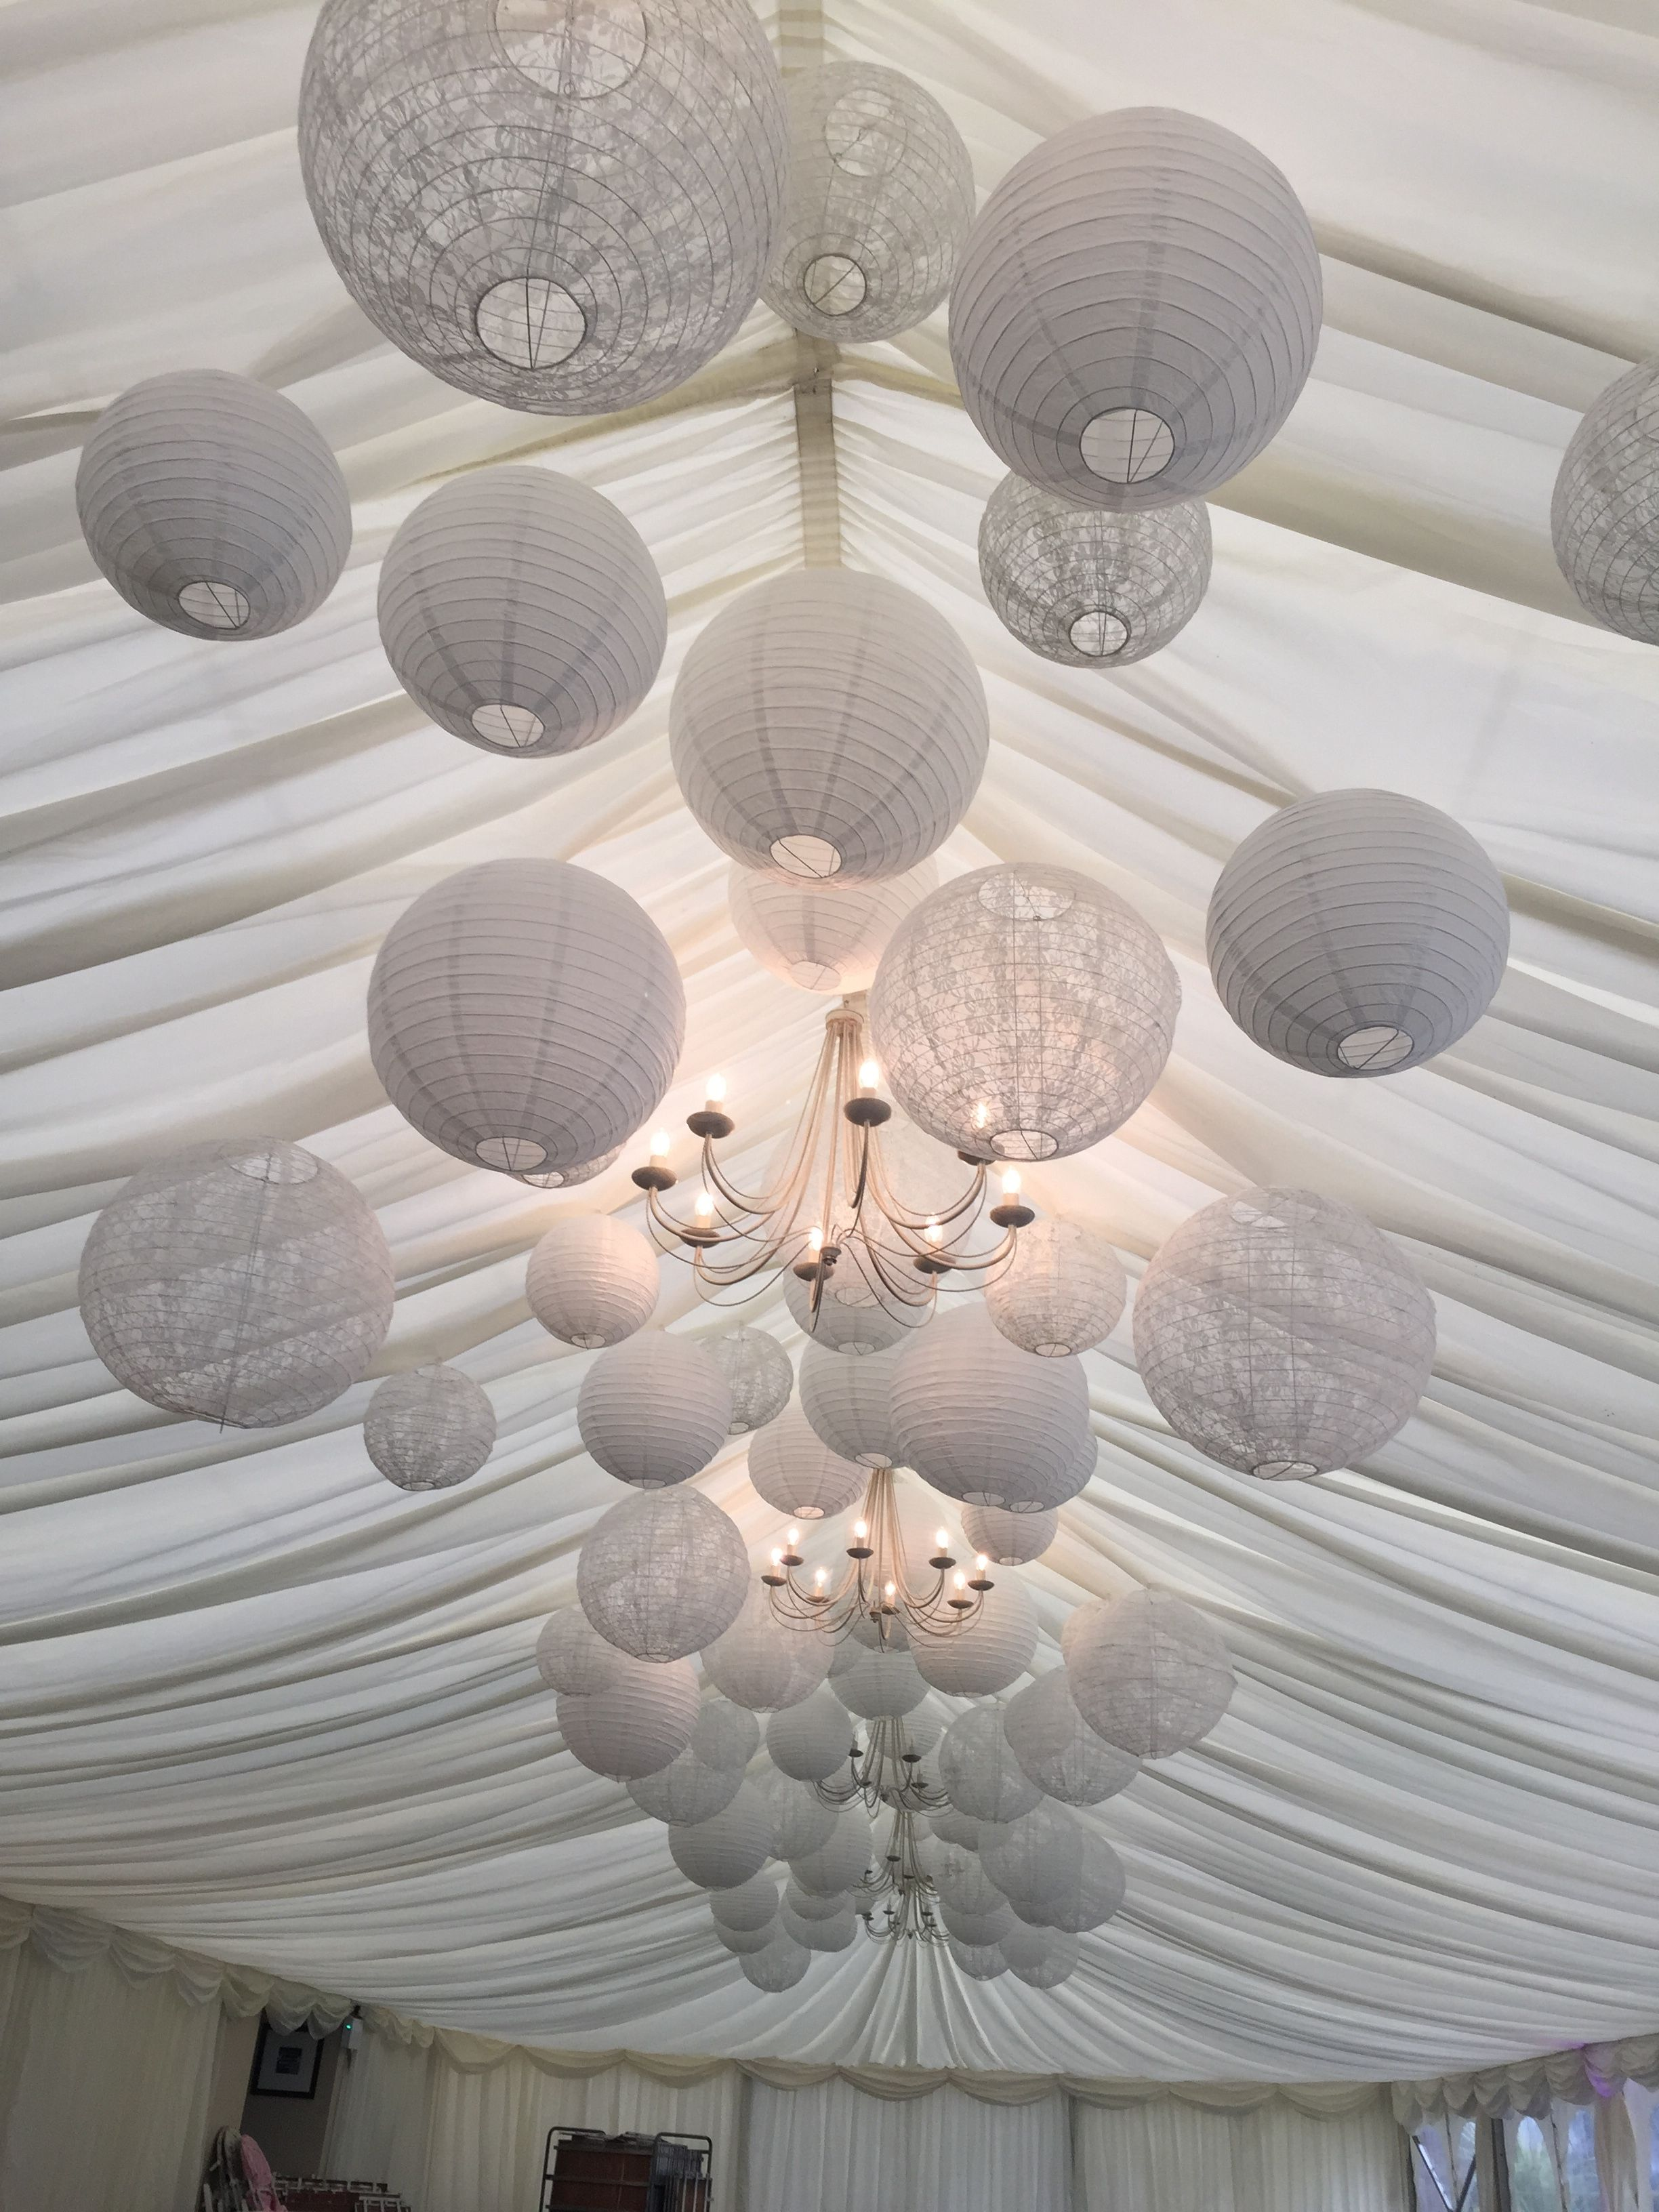 Suspend our White paper lanterns down the